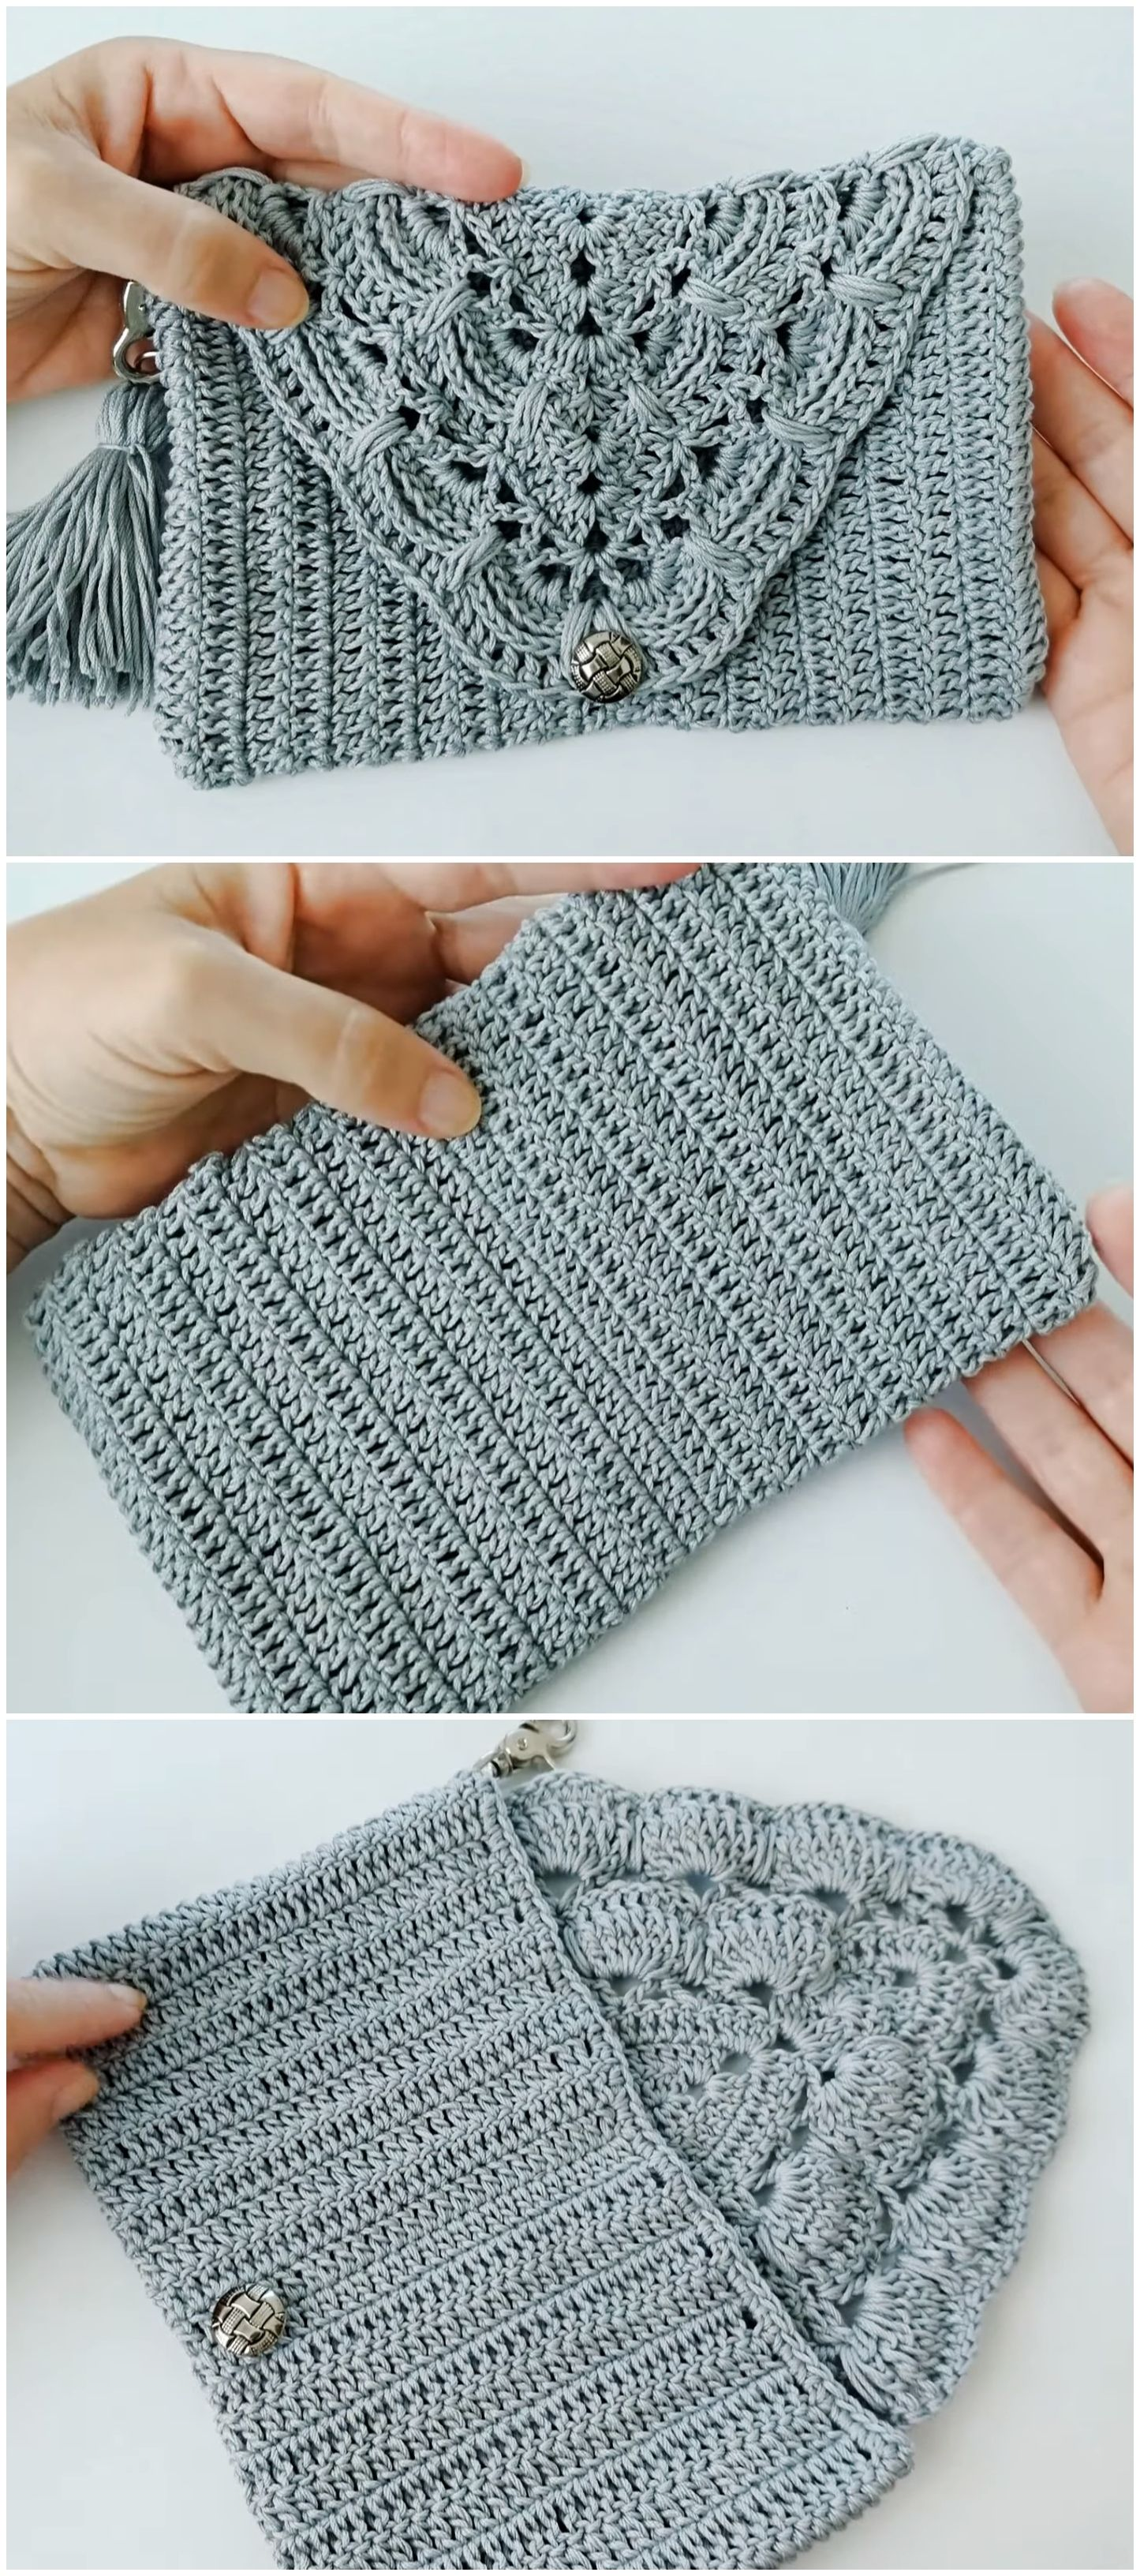 Crochet Beautiful Clutch Video Tutorial